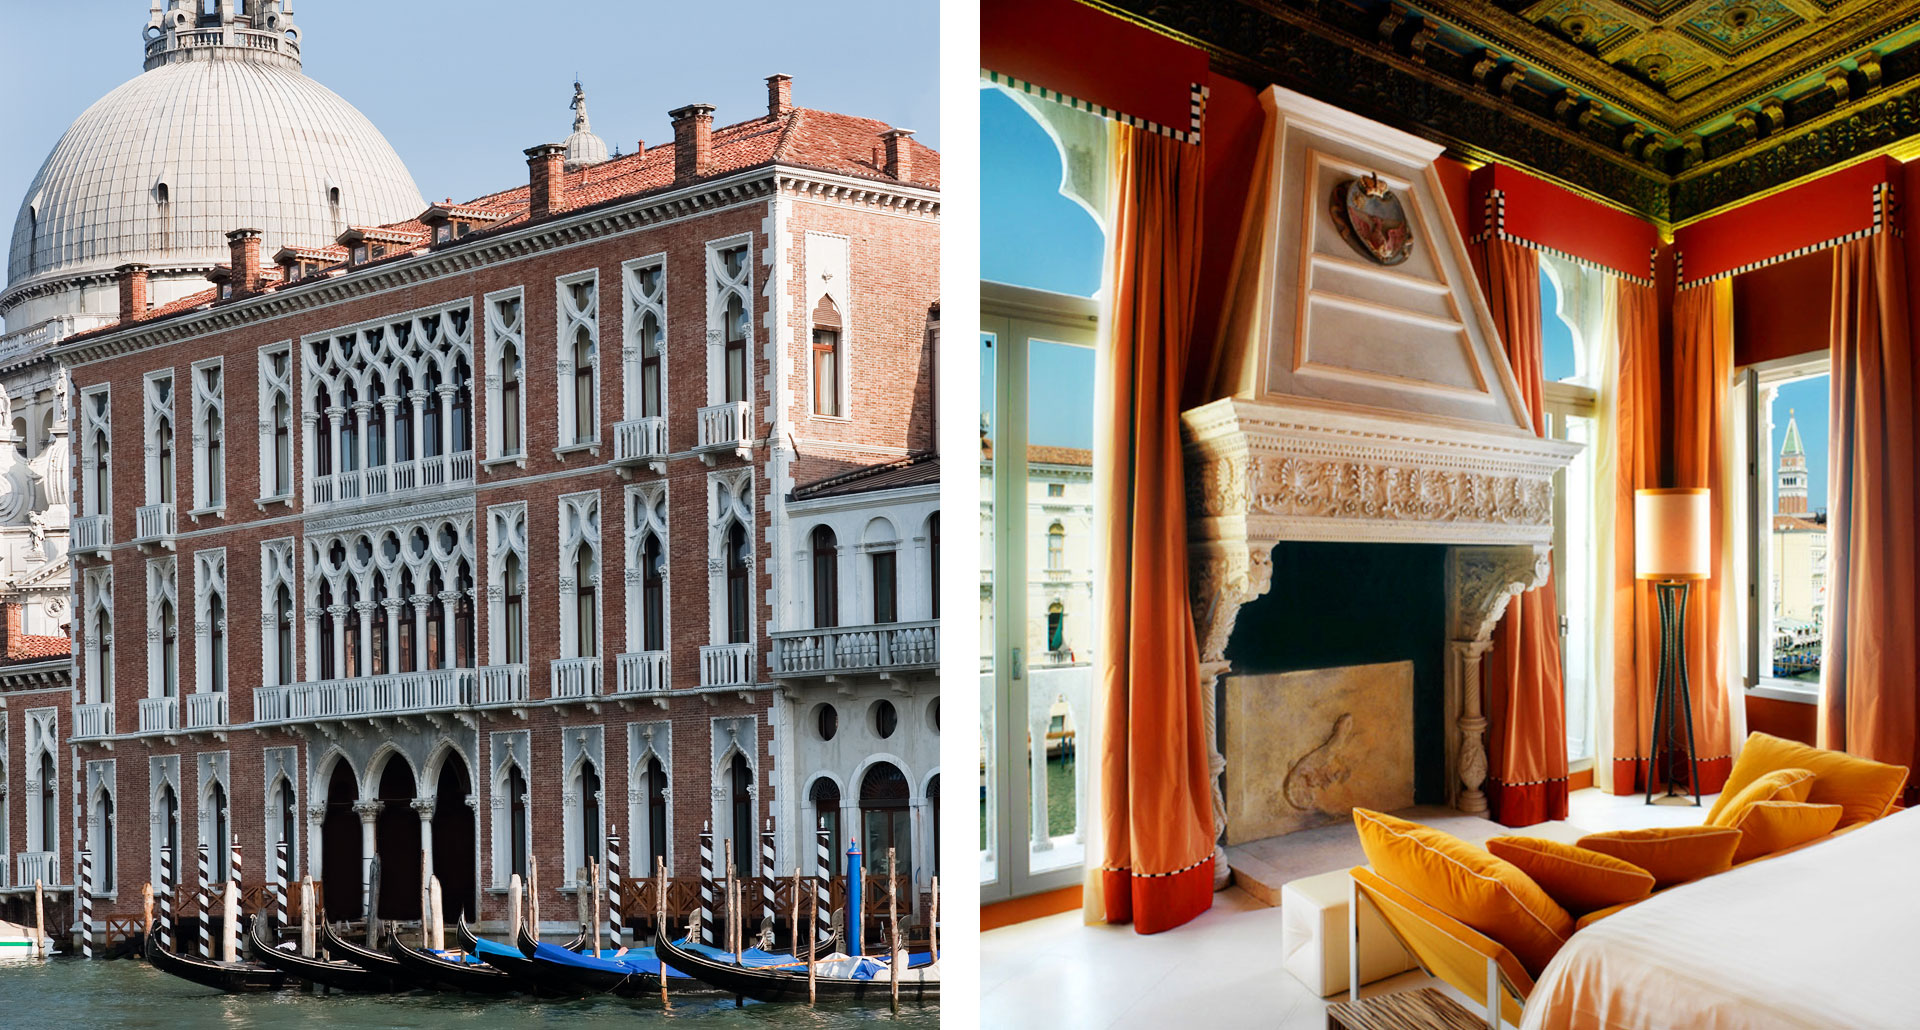 Sina Centurion Palace - boutique hotel in Veneto